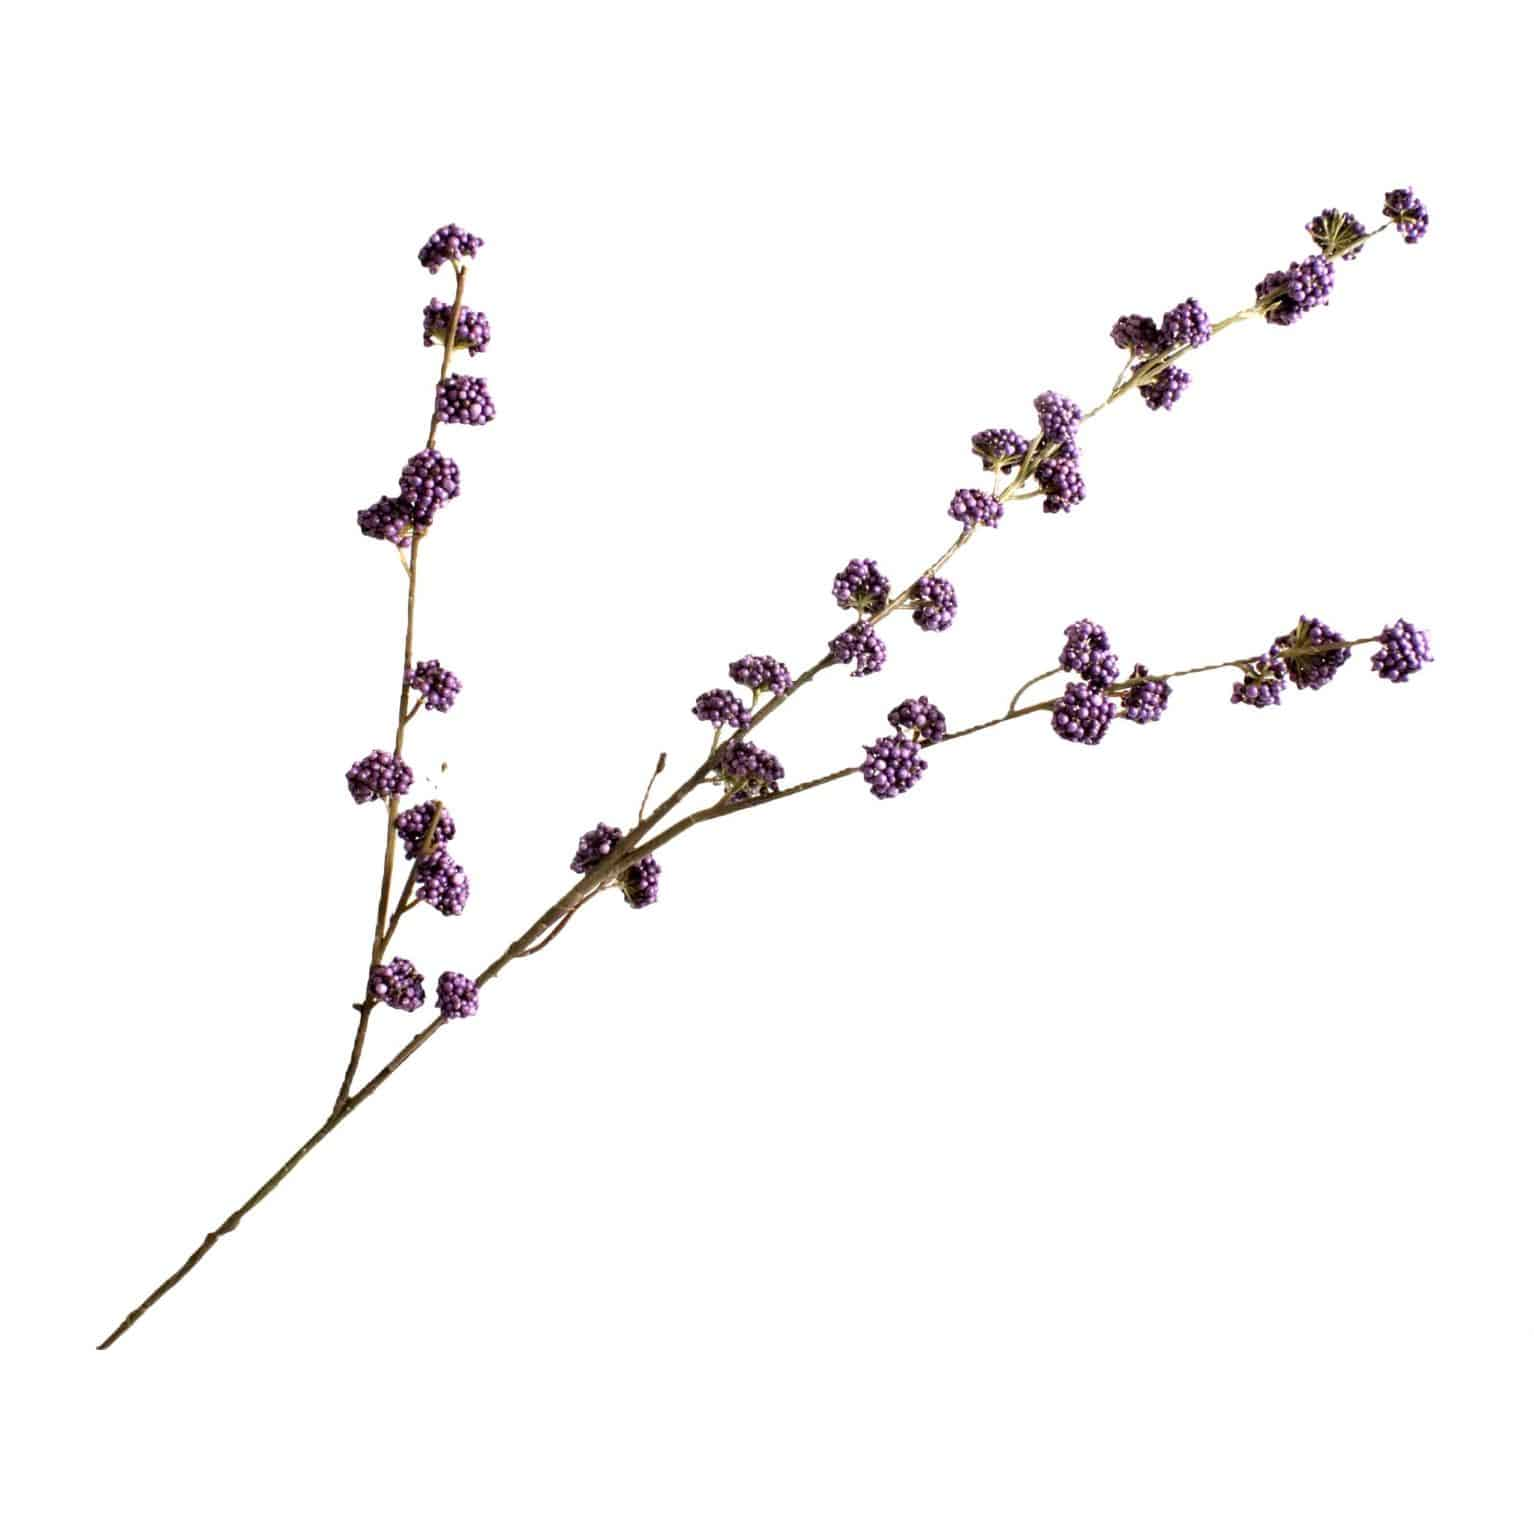 Buy delightful faux varia callicarpa purple spray stem. Known as the beauty berry